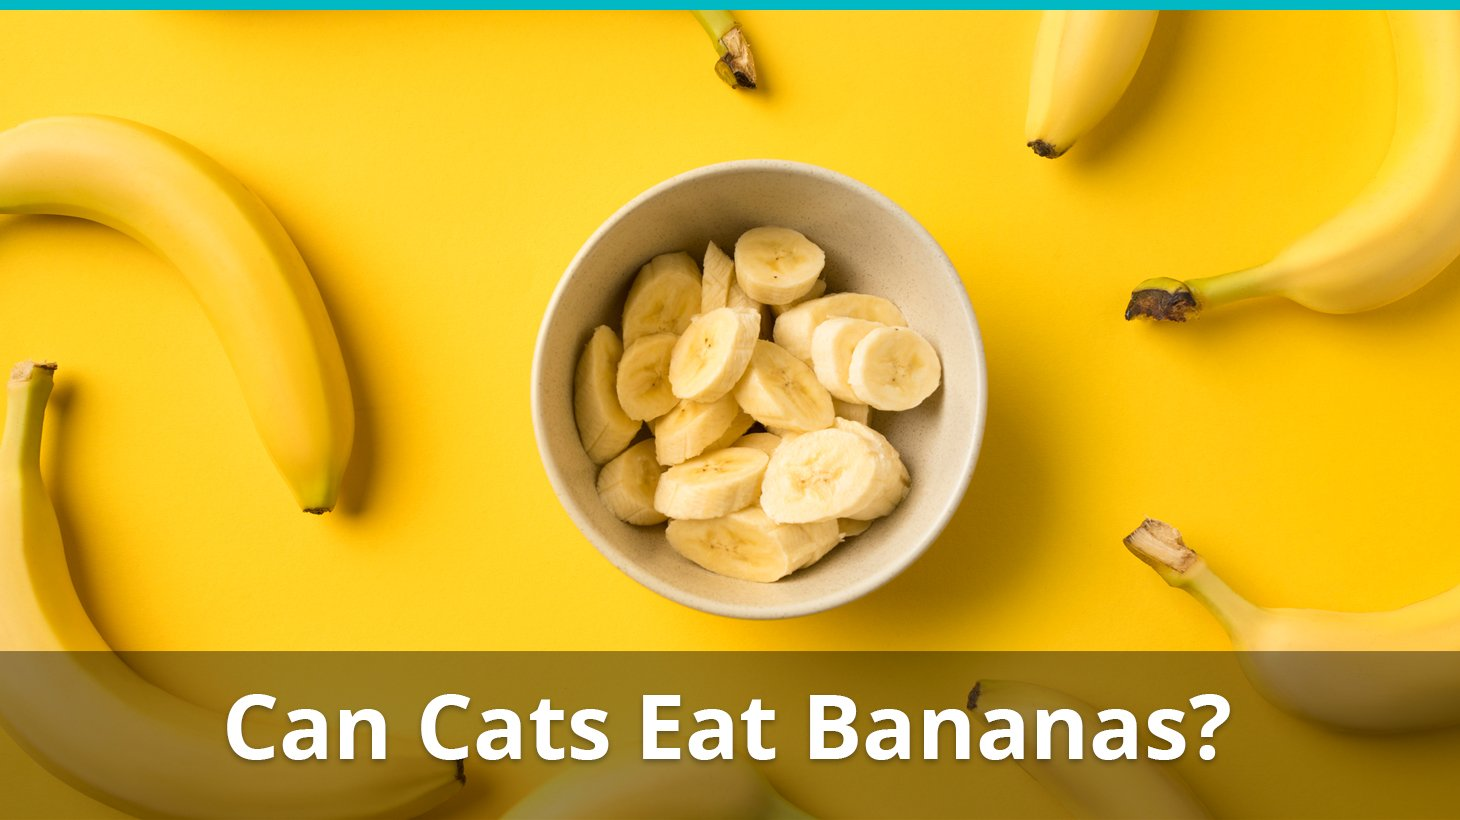 Are Bananas Safe For Cats To Eat